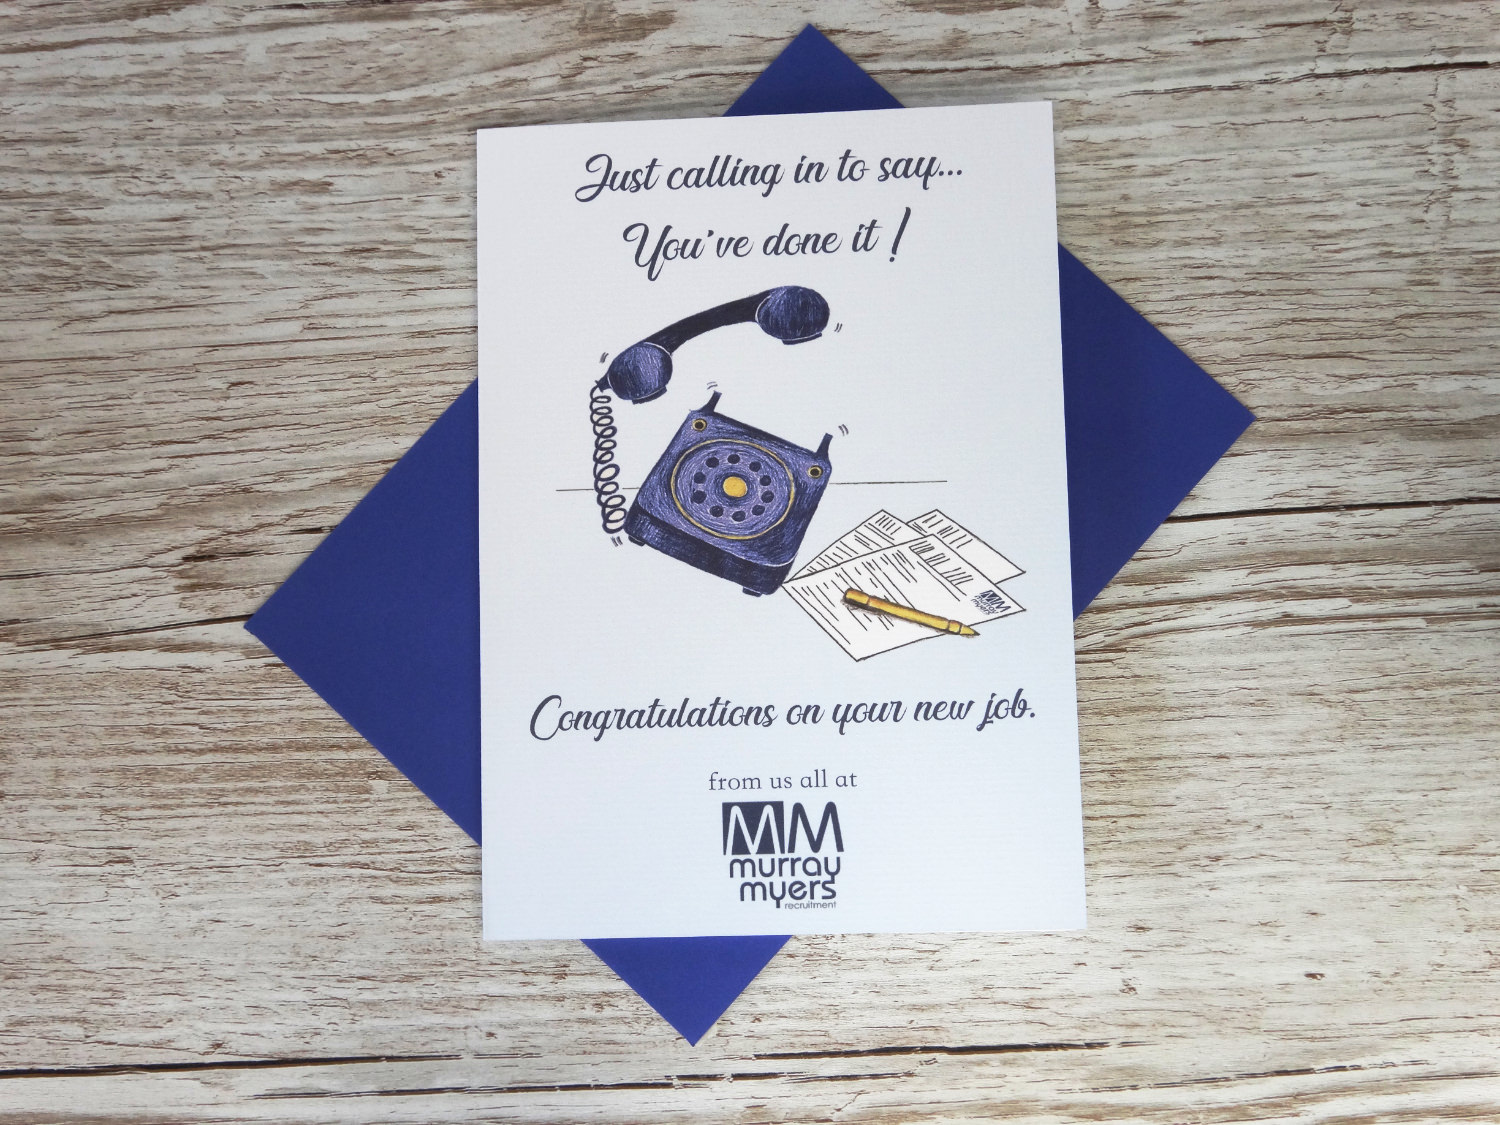 Custom corporate congratulations on your new job card for businesses with bespoke hand drawn phone and paper and logo in bulk